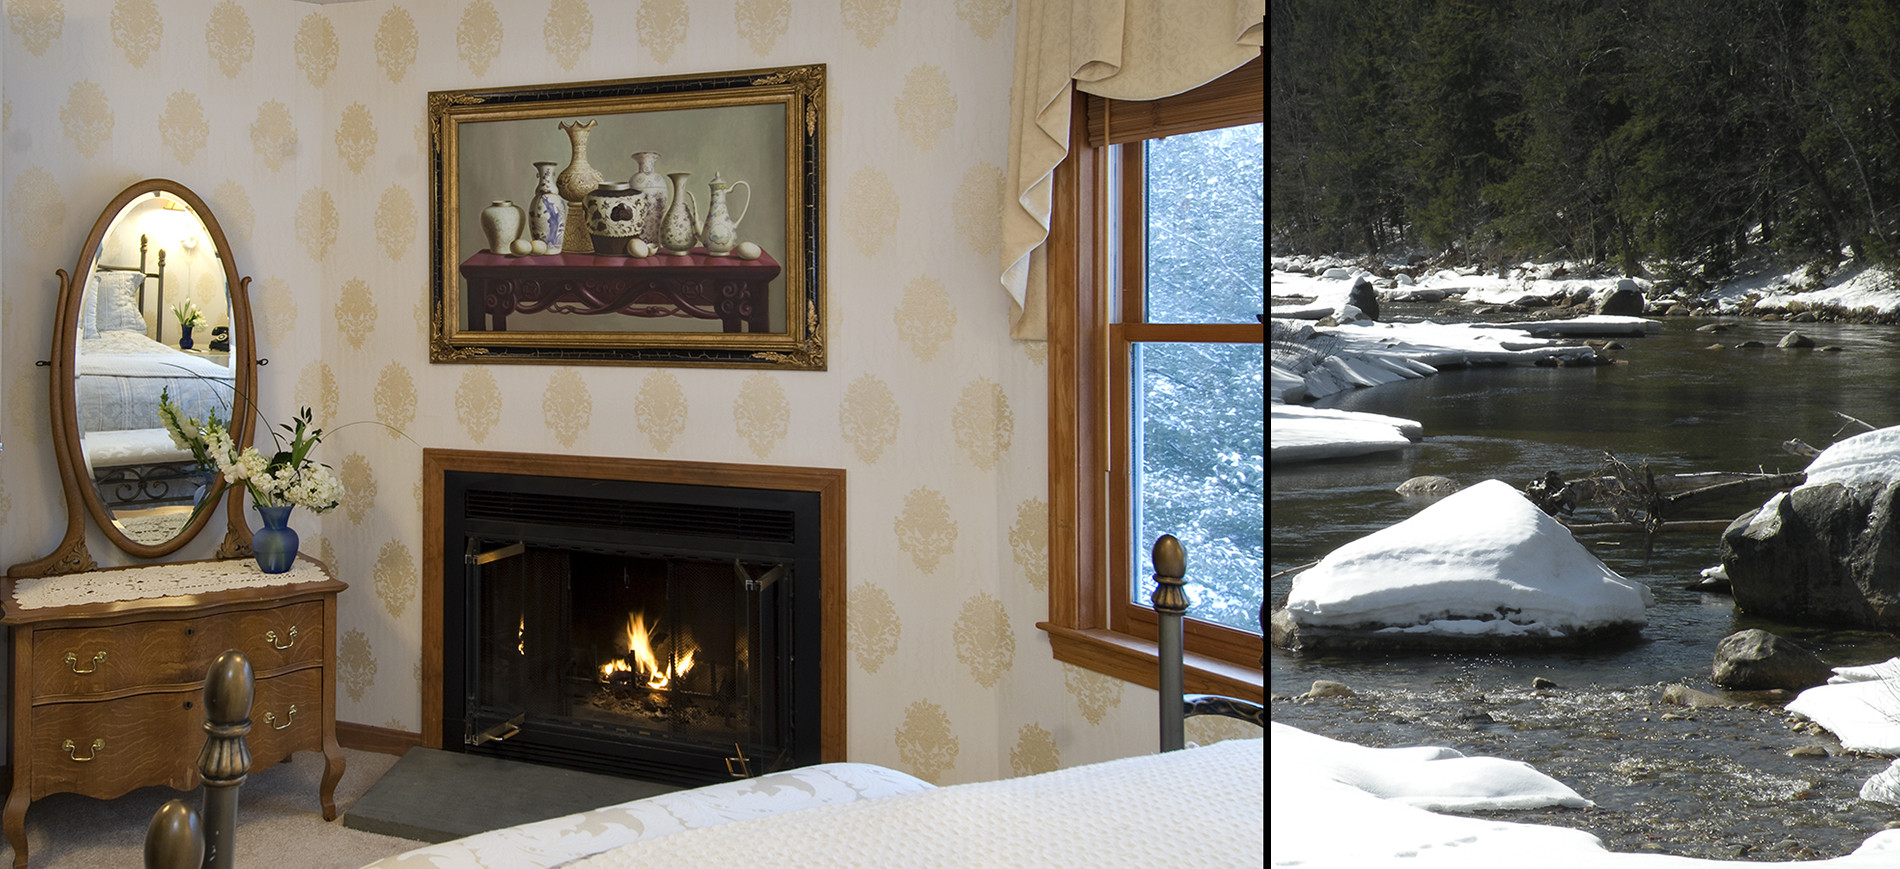 Guest room with dresser, fireplace with picture abobe, queen bed with ivory bedding, window with gold valance, image on right is snow on rocks of Ellis River